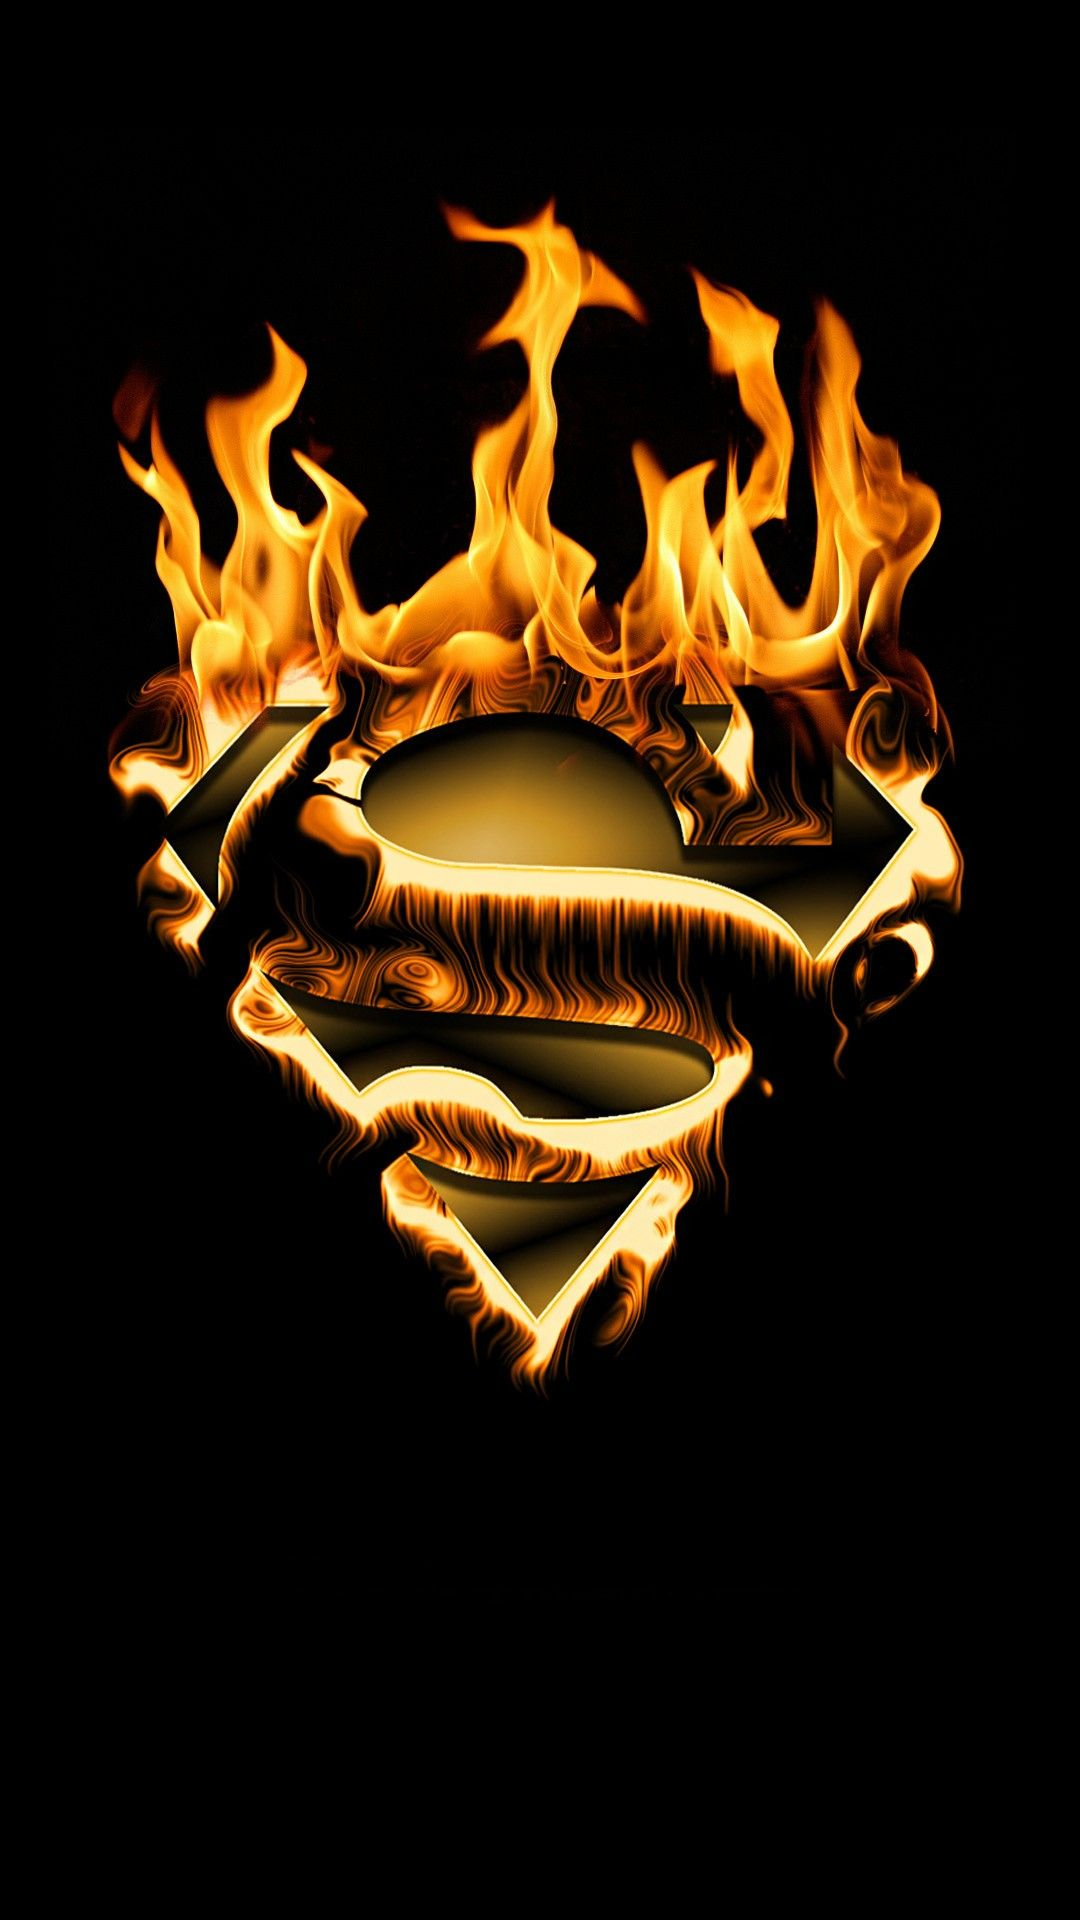 Pin by Anass on Super heros Superman wallpaper, Superman